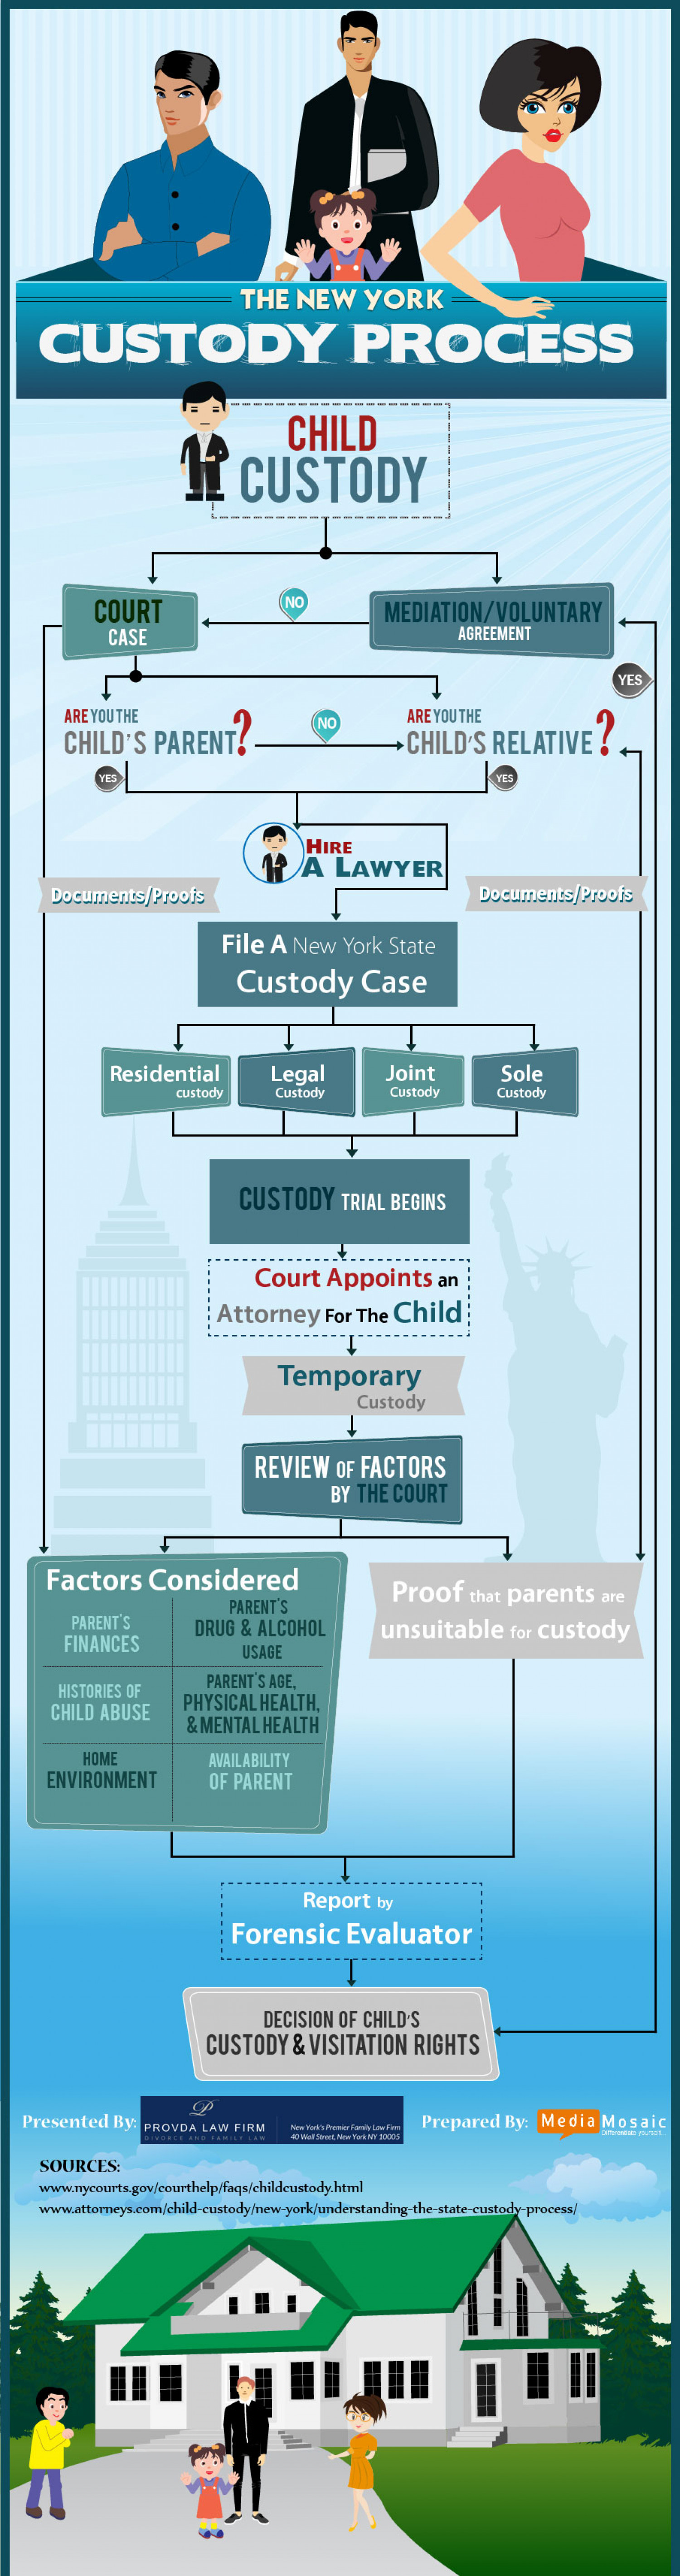 The New York Custody Process Infographic